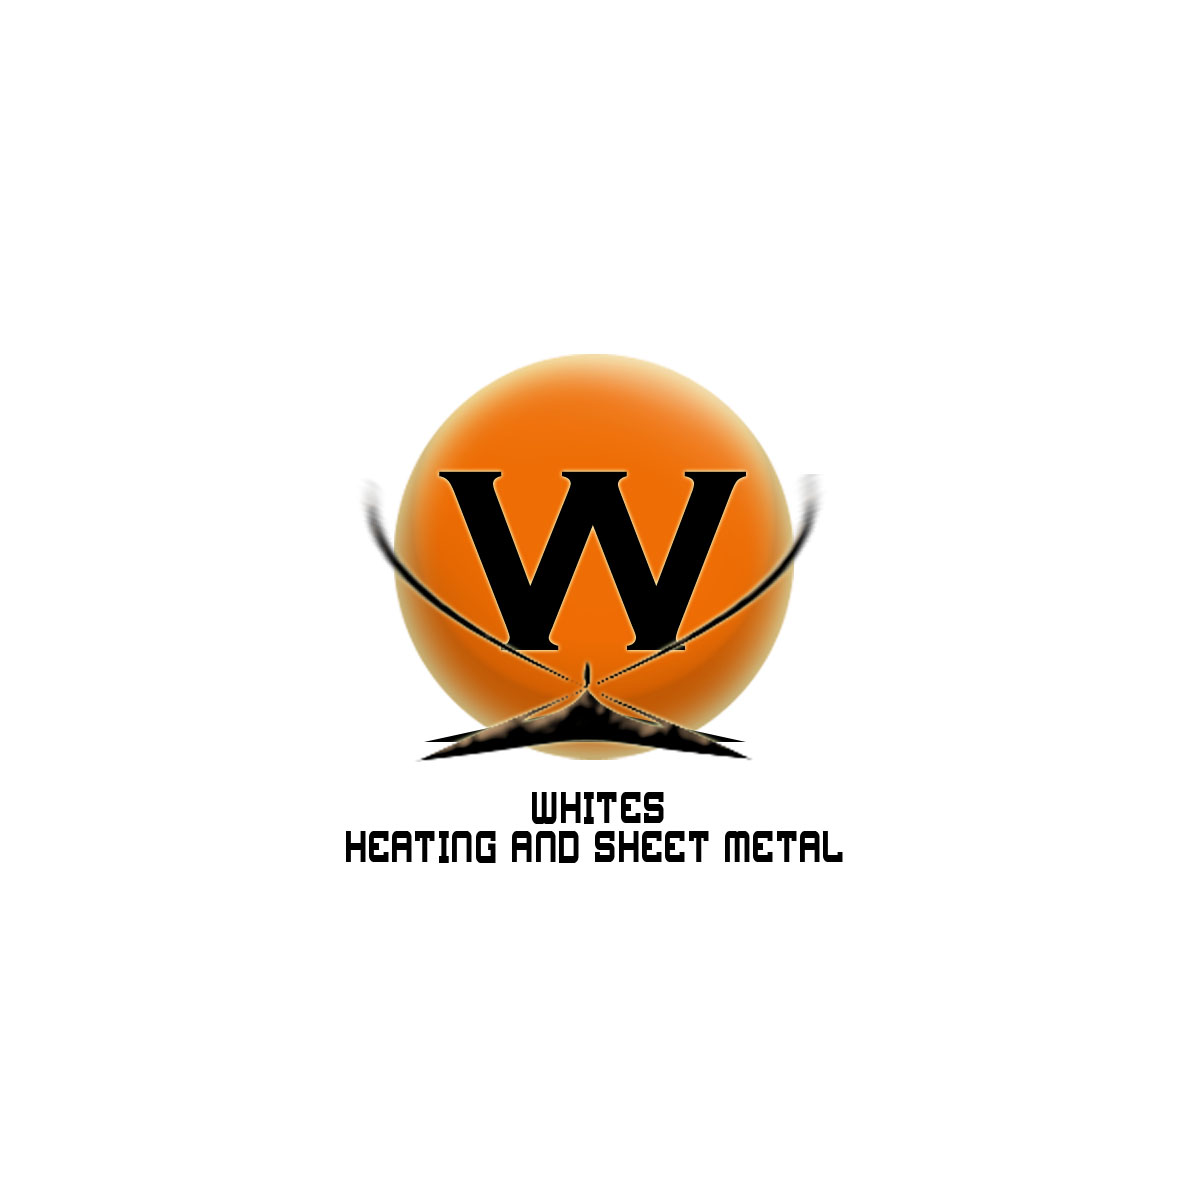 Logo Design by Moag - Entry No. 105 in the Logo Design Contest Imaginative Logo Design for White's Heating and Sheet Metal.